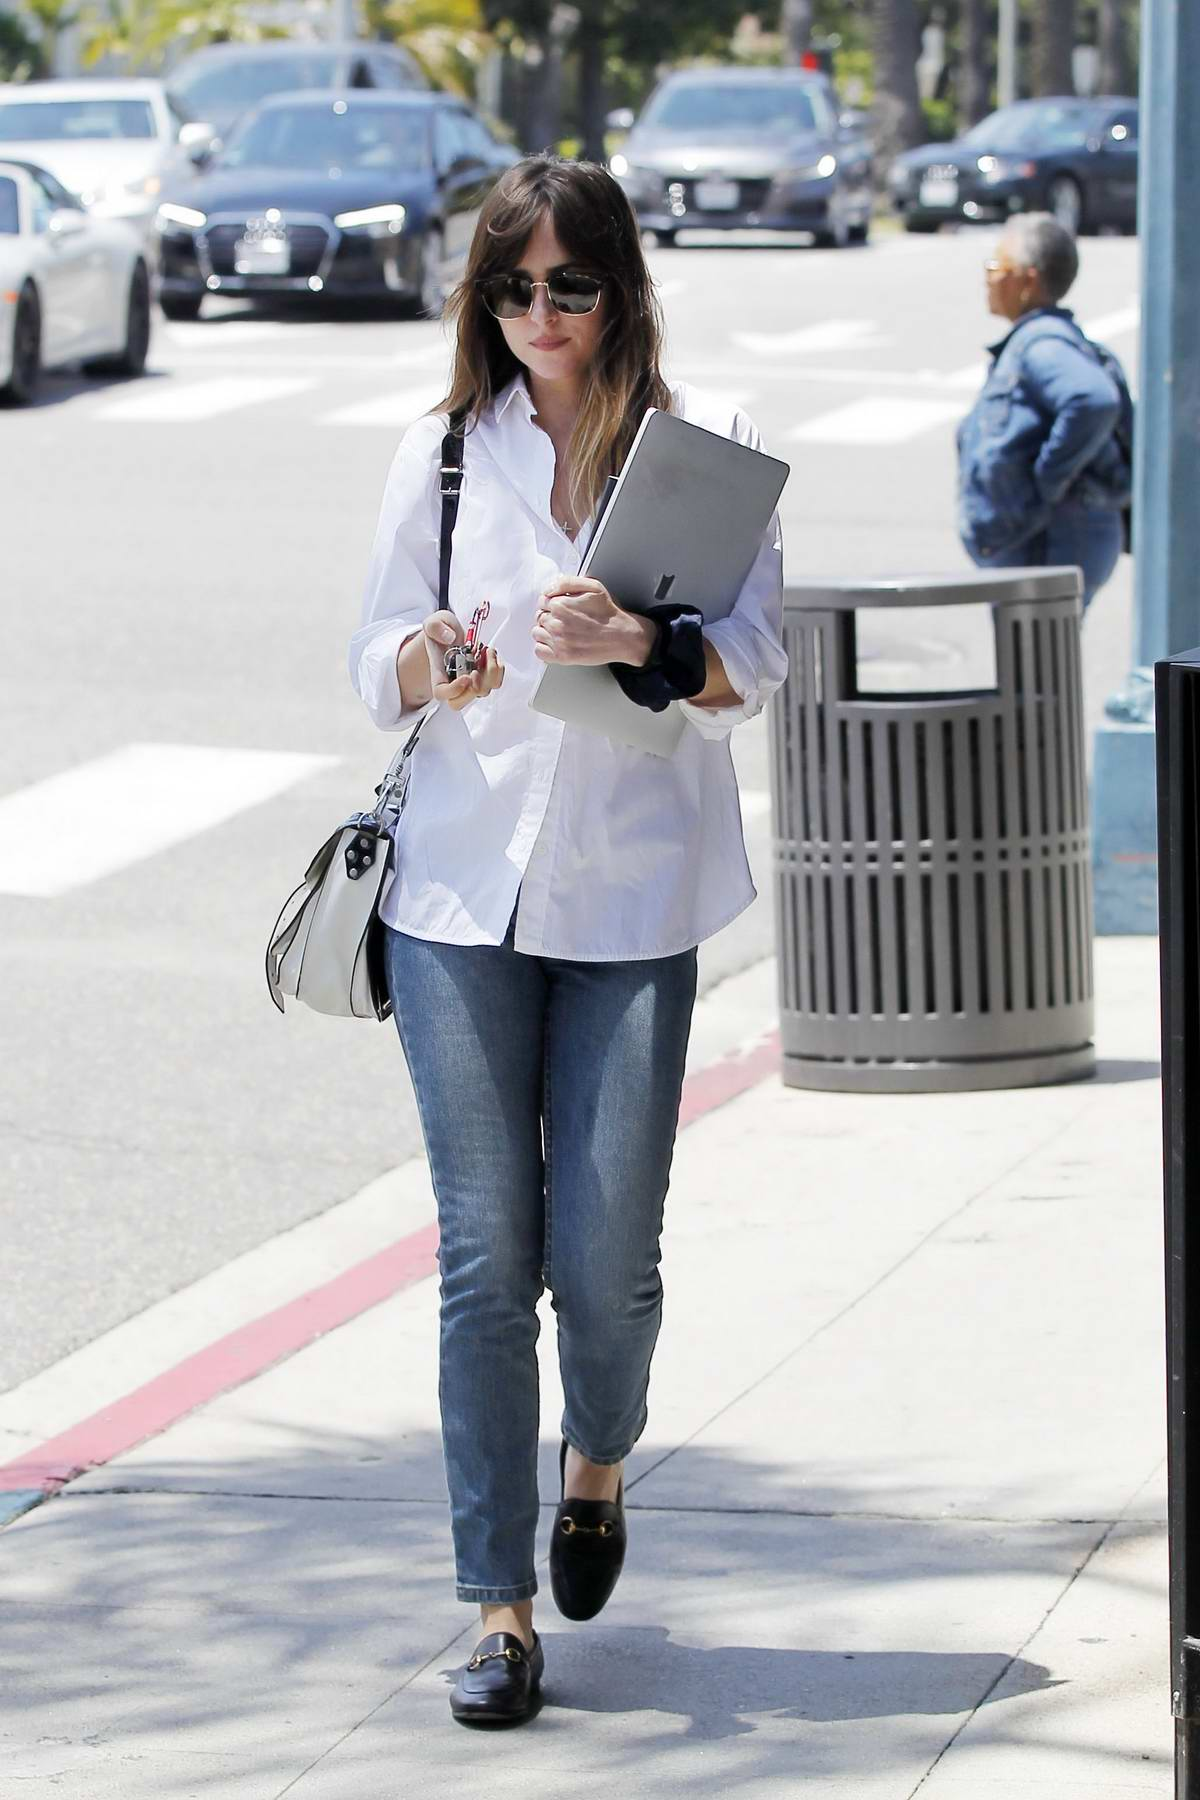 Dakota Johnson holds on to her MacBook as she leaves lunch wearing a white shirt and blue jeans in Beverly Hills, Los Angeles